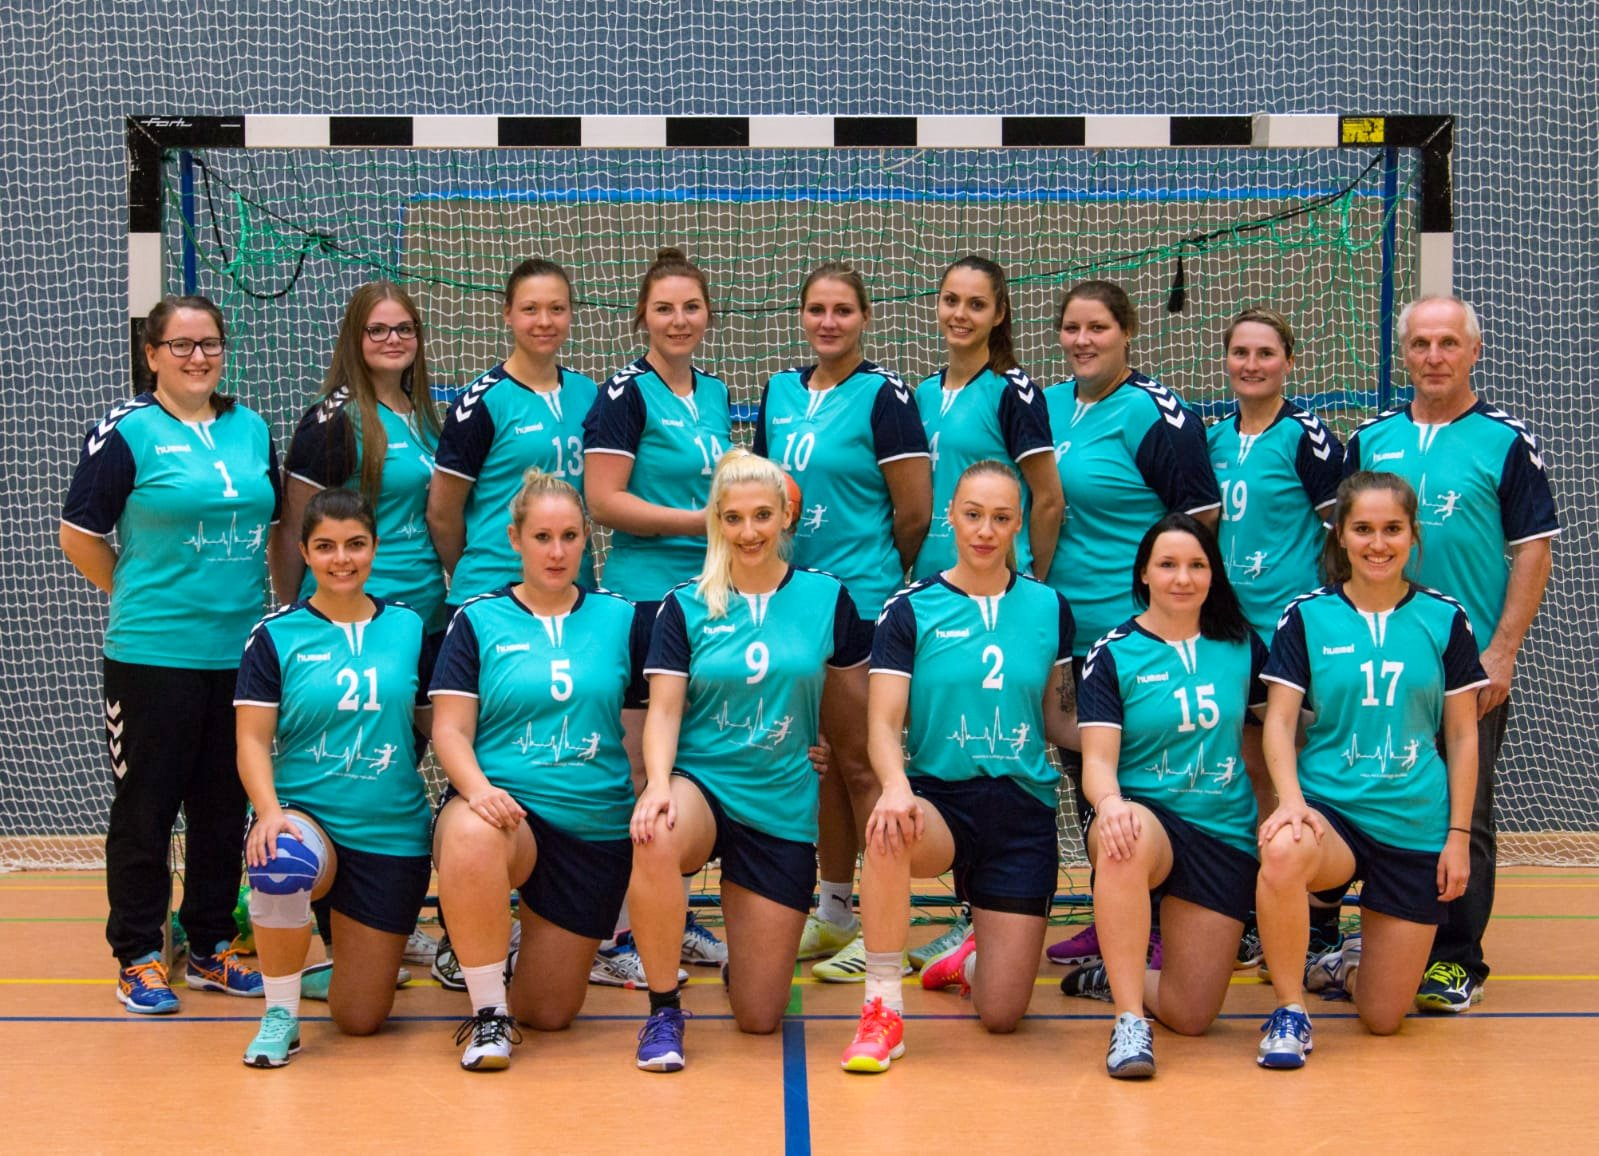 Frauenteam 2018/19